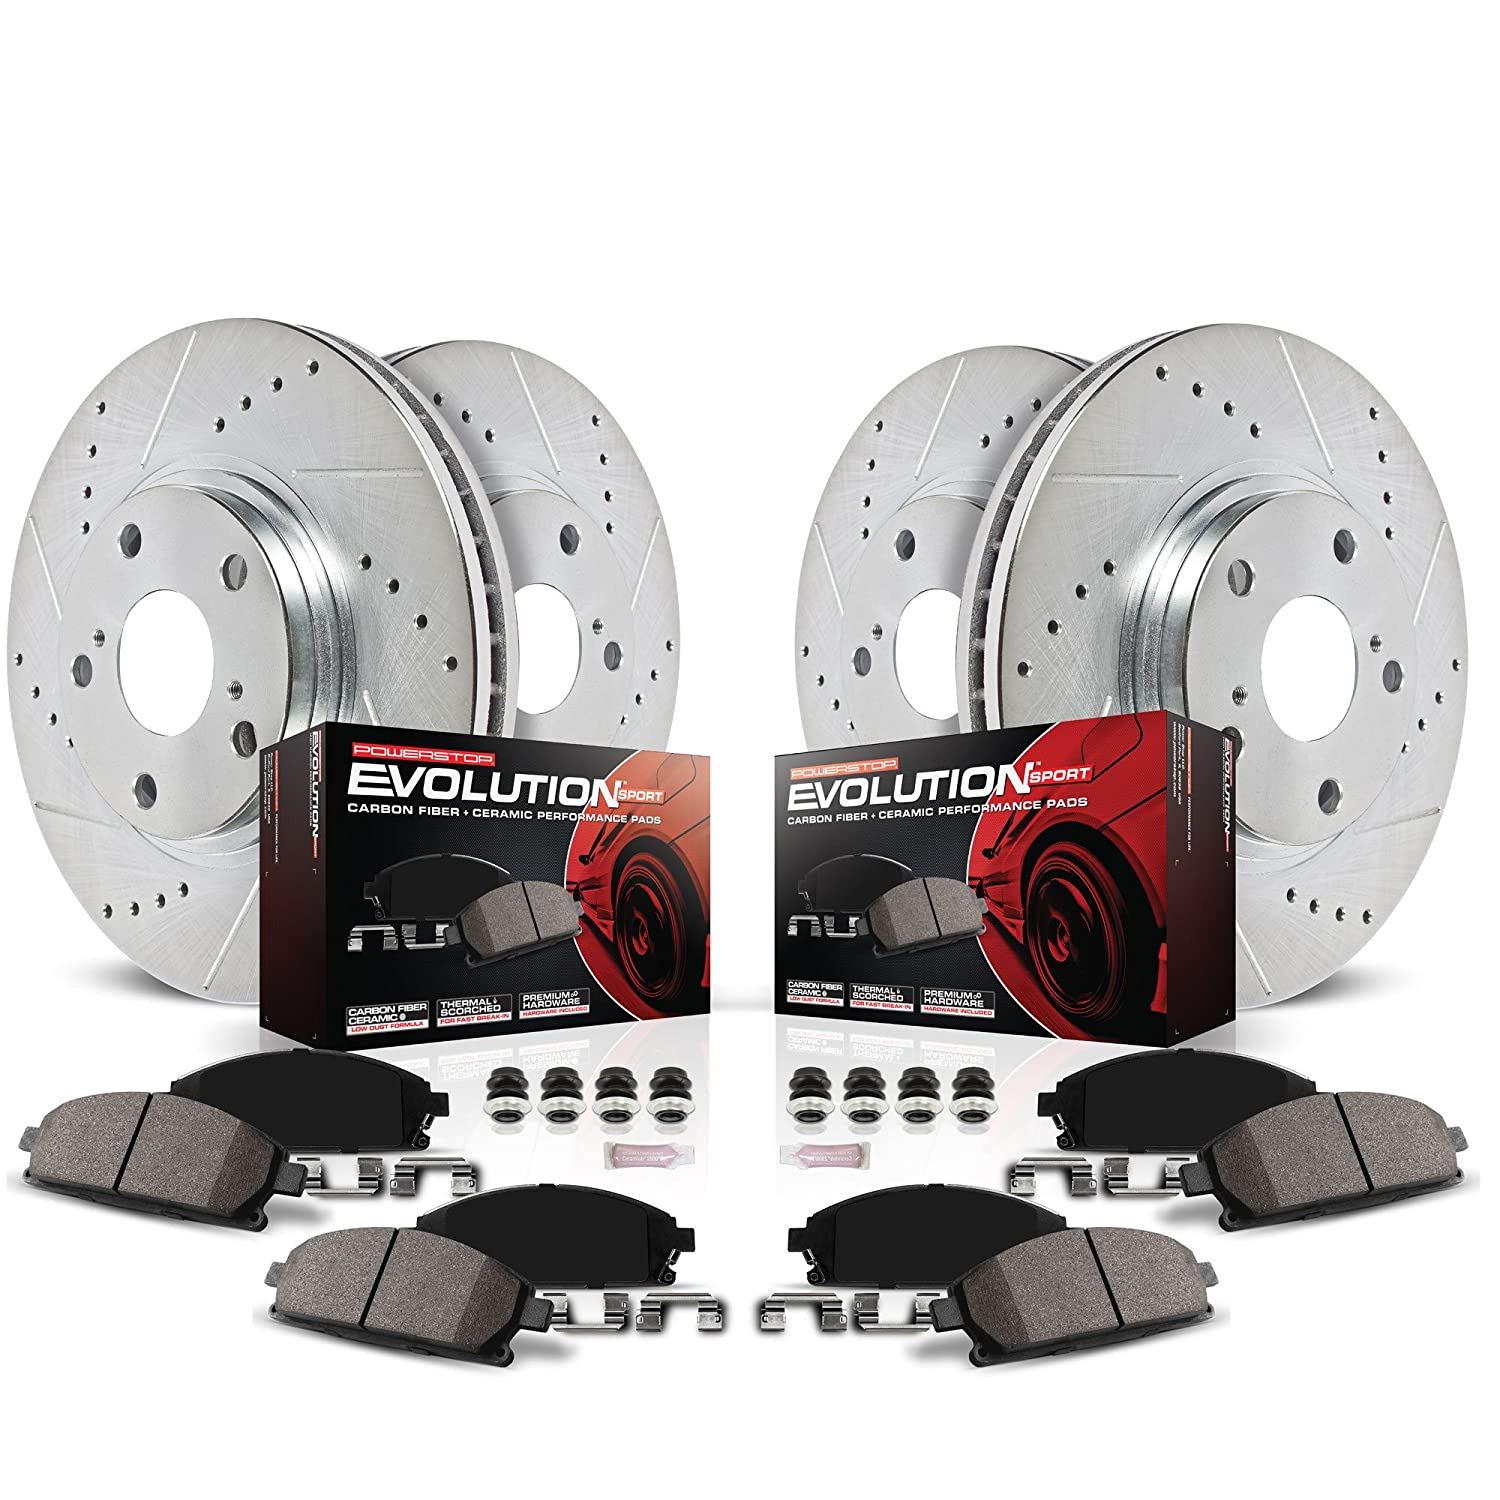 Power Stop K689 Front and Rear Z23 Evolution Brake Kit with Drilled/Slotted Rotors and Ceramic Brake Pads